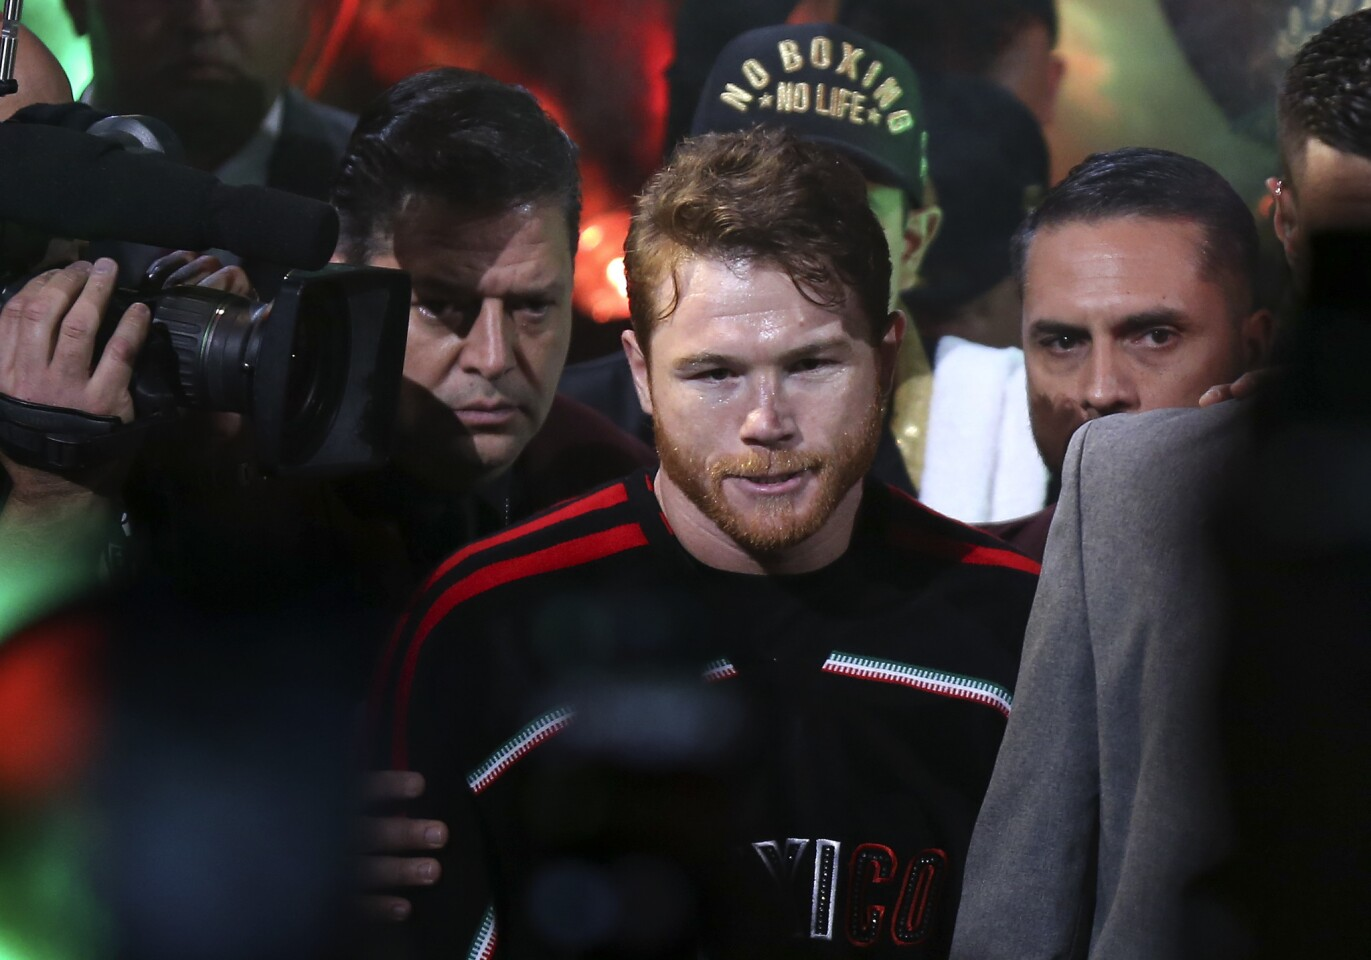 Canelo Alvarez enters T-Mobile arena for a middleweight title boxing match against Gennady Golovkin, Saturday, Sept. 15, 2018, in Las Vegas.